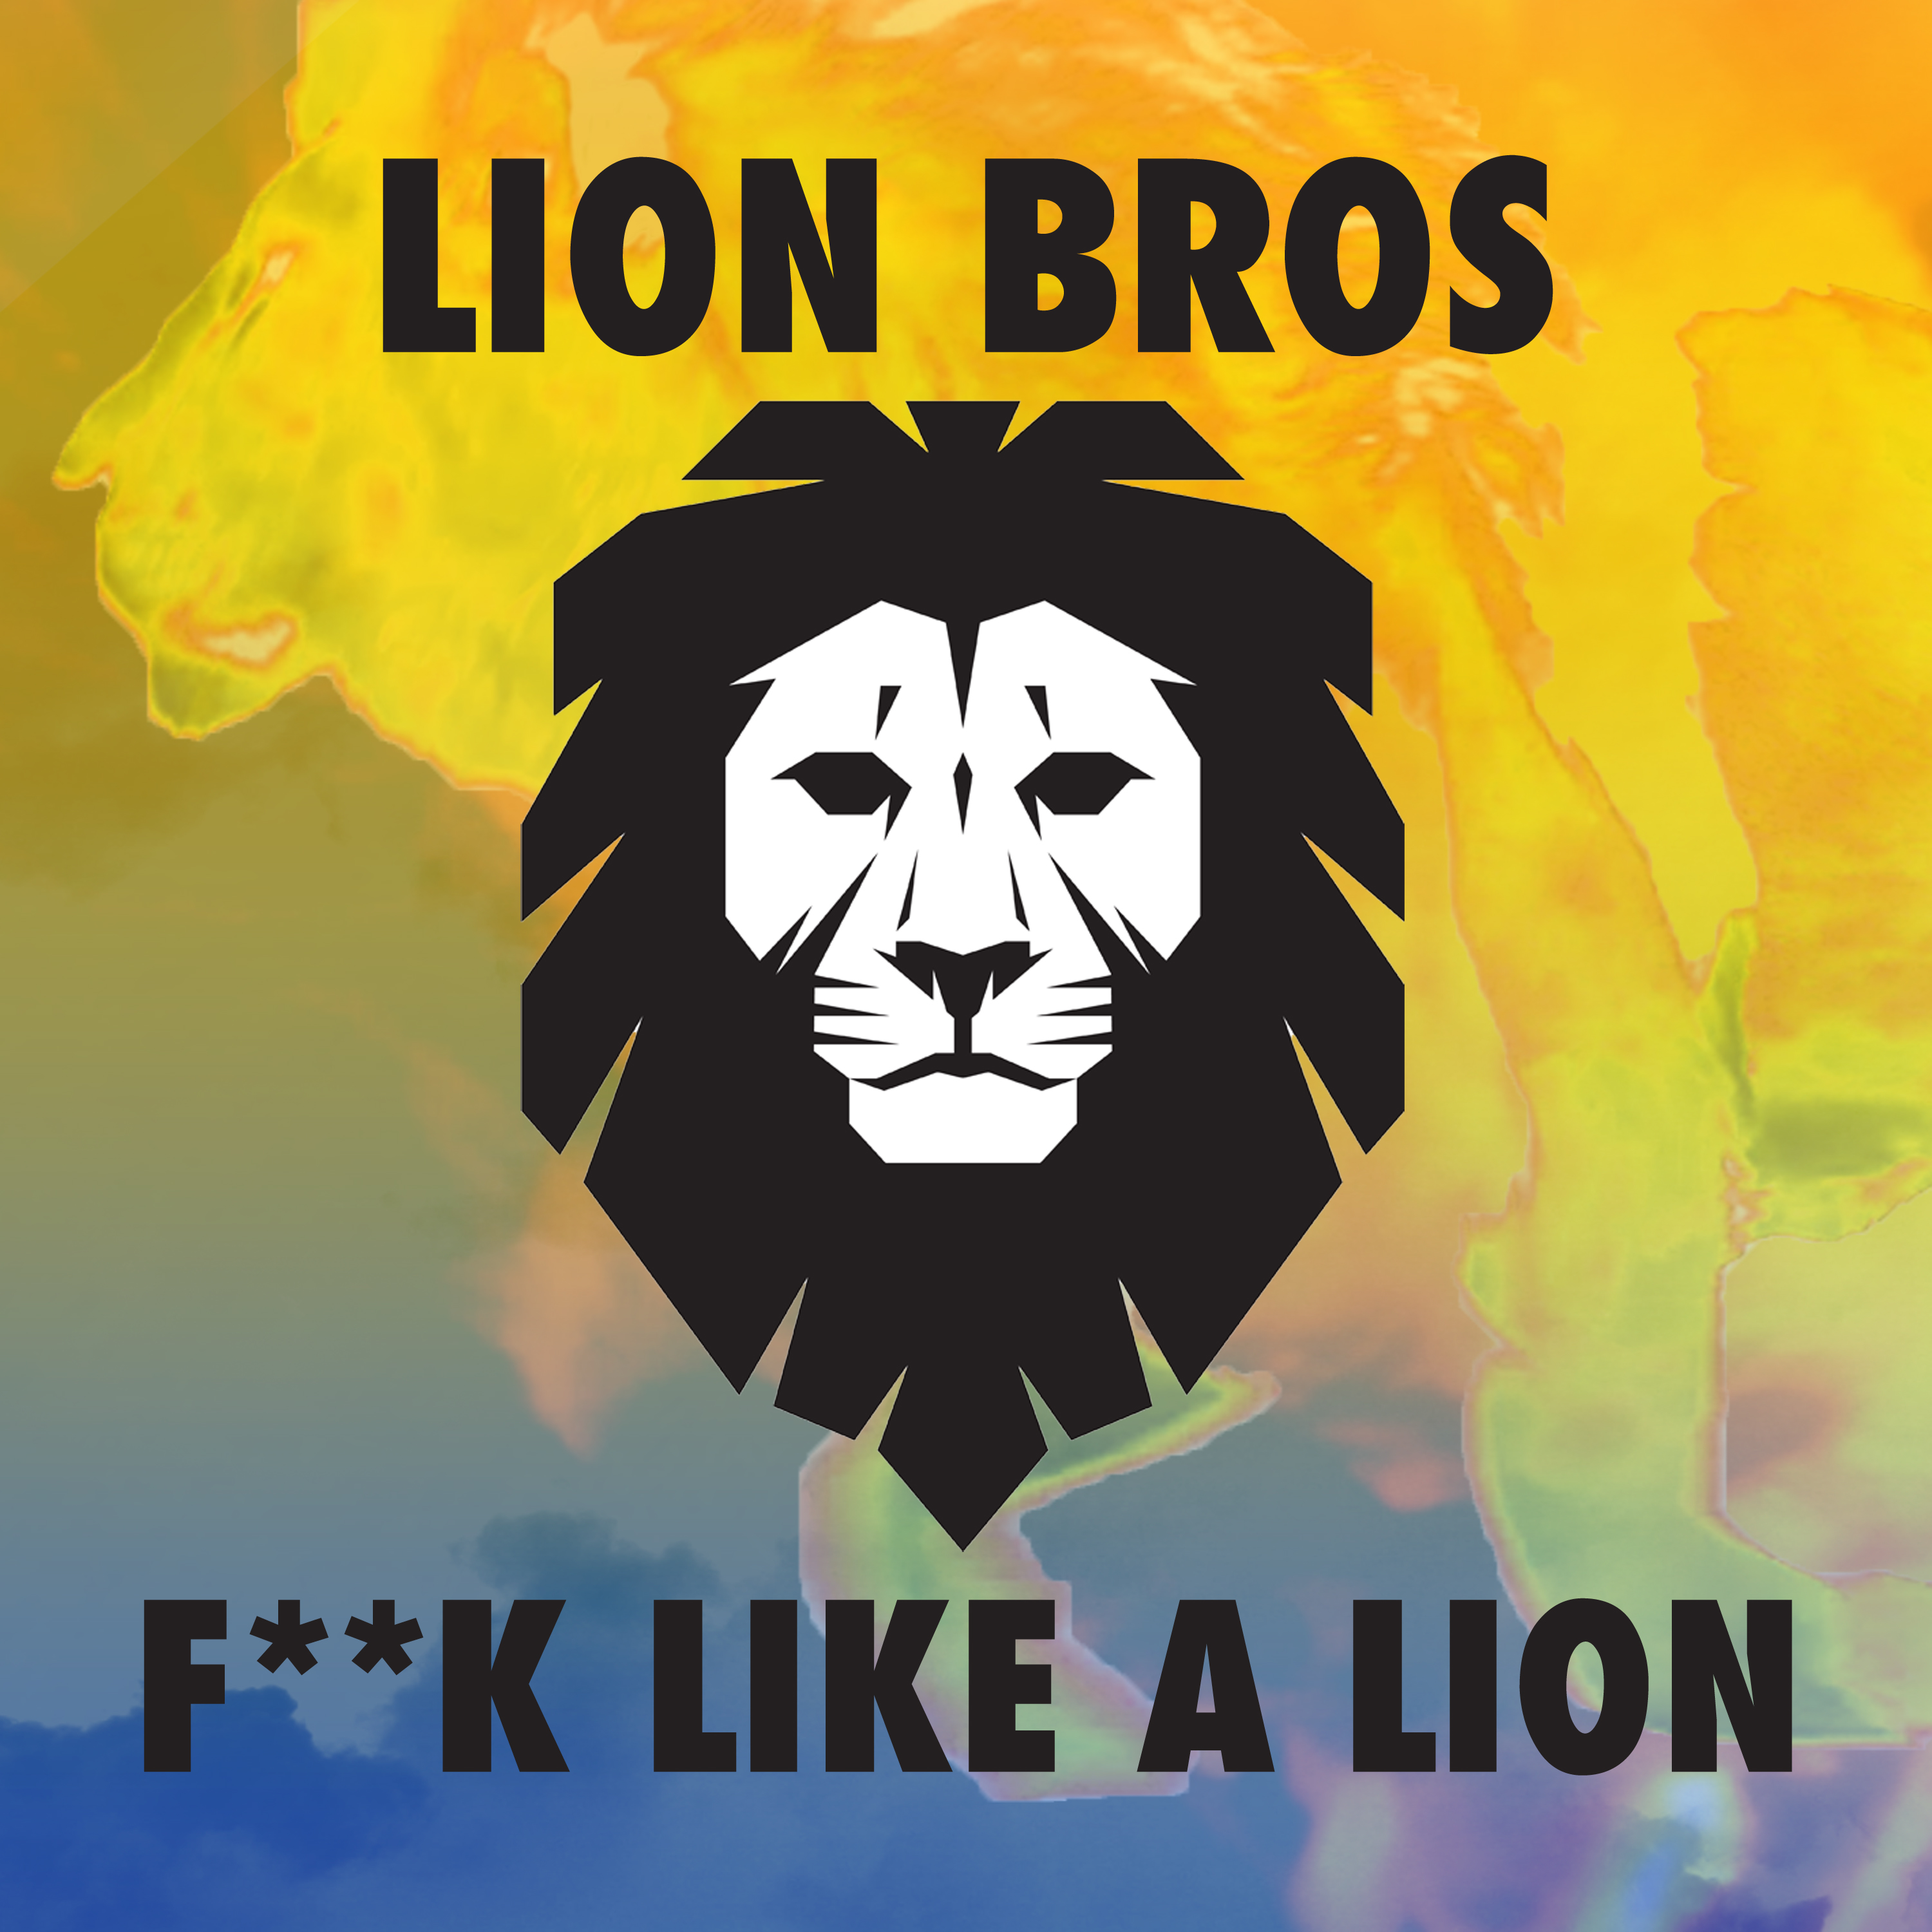 LION BROS-F**k Like A Lion